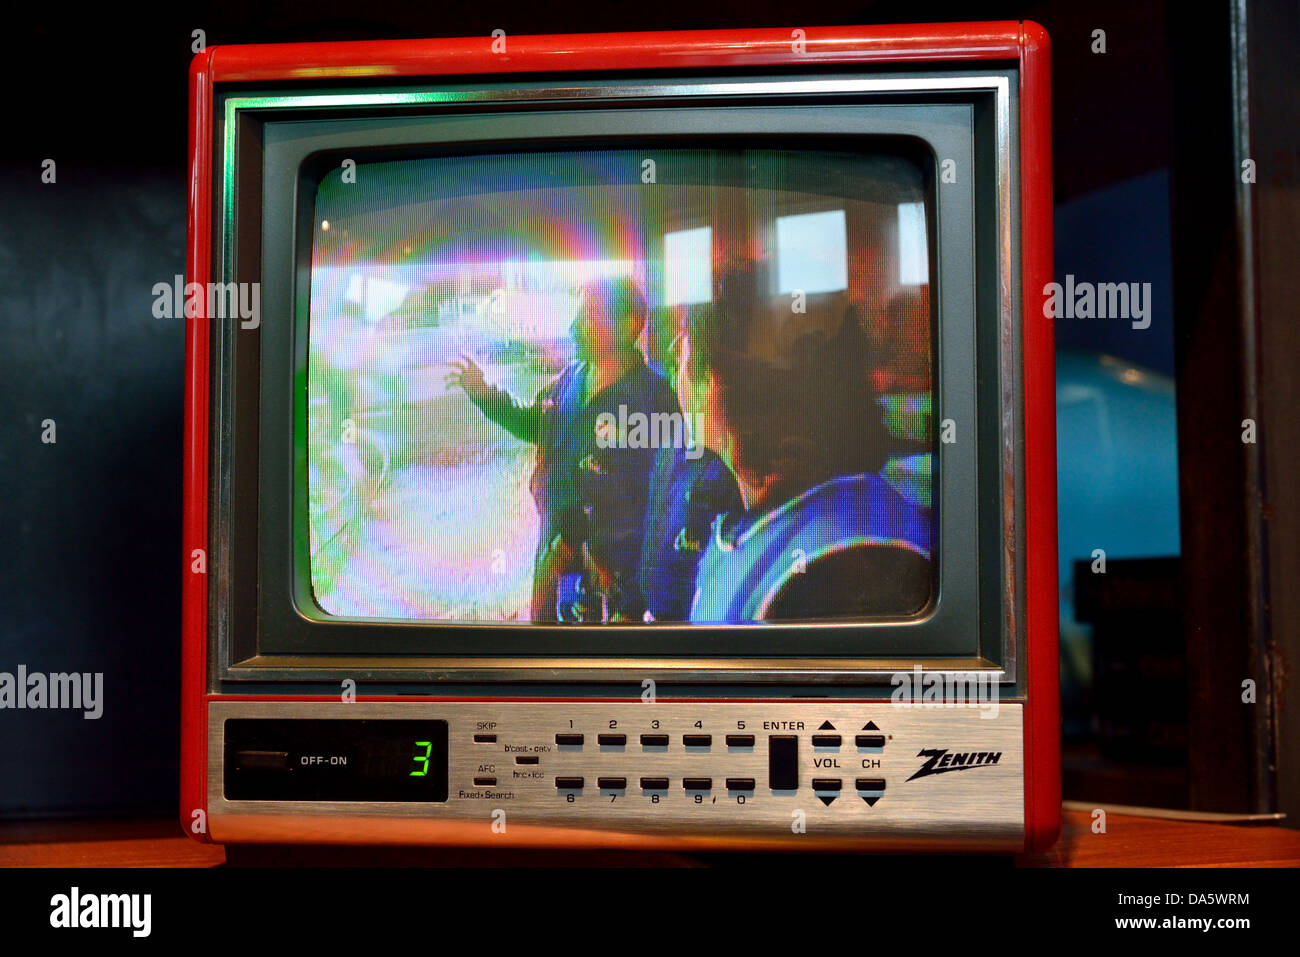 An old Zenith color television set Stock Photo: 57907688 - Alamy